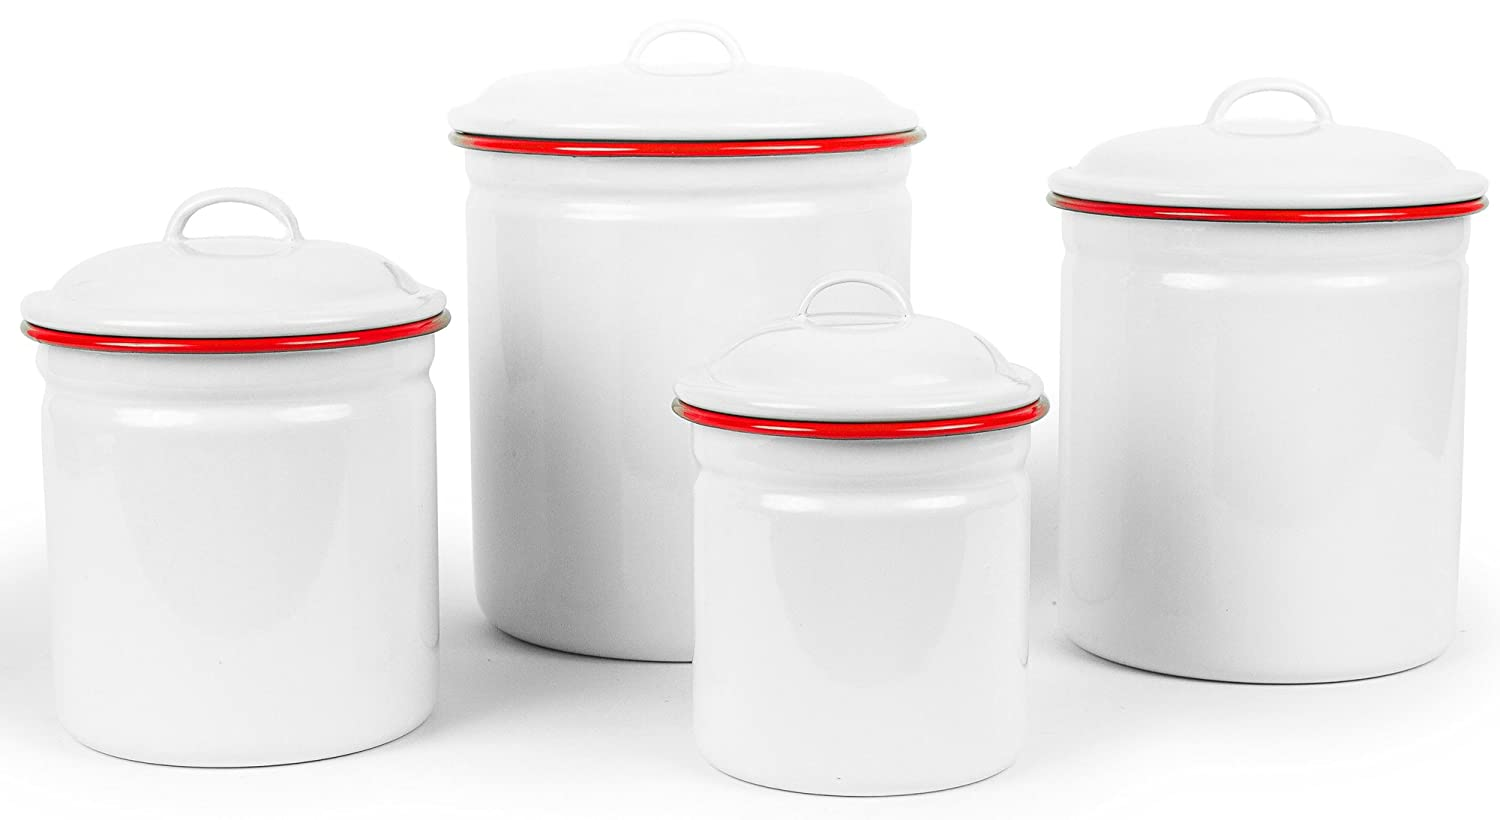 Enamelware 4 Piece Canister Set - Solid White with Red Rim